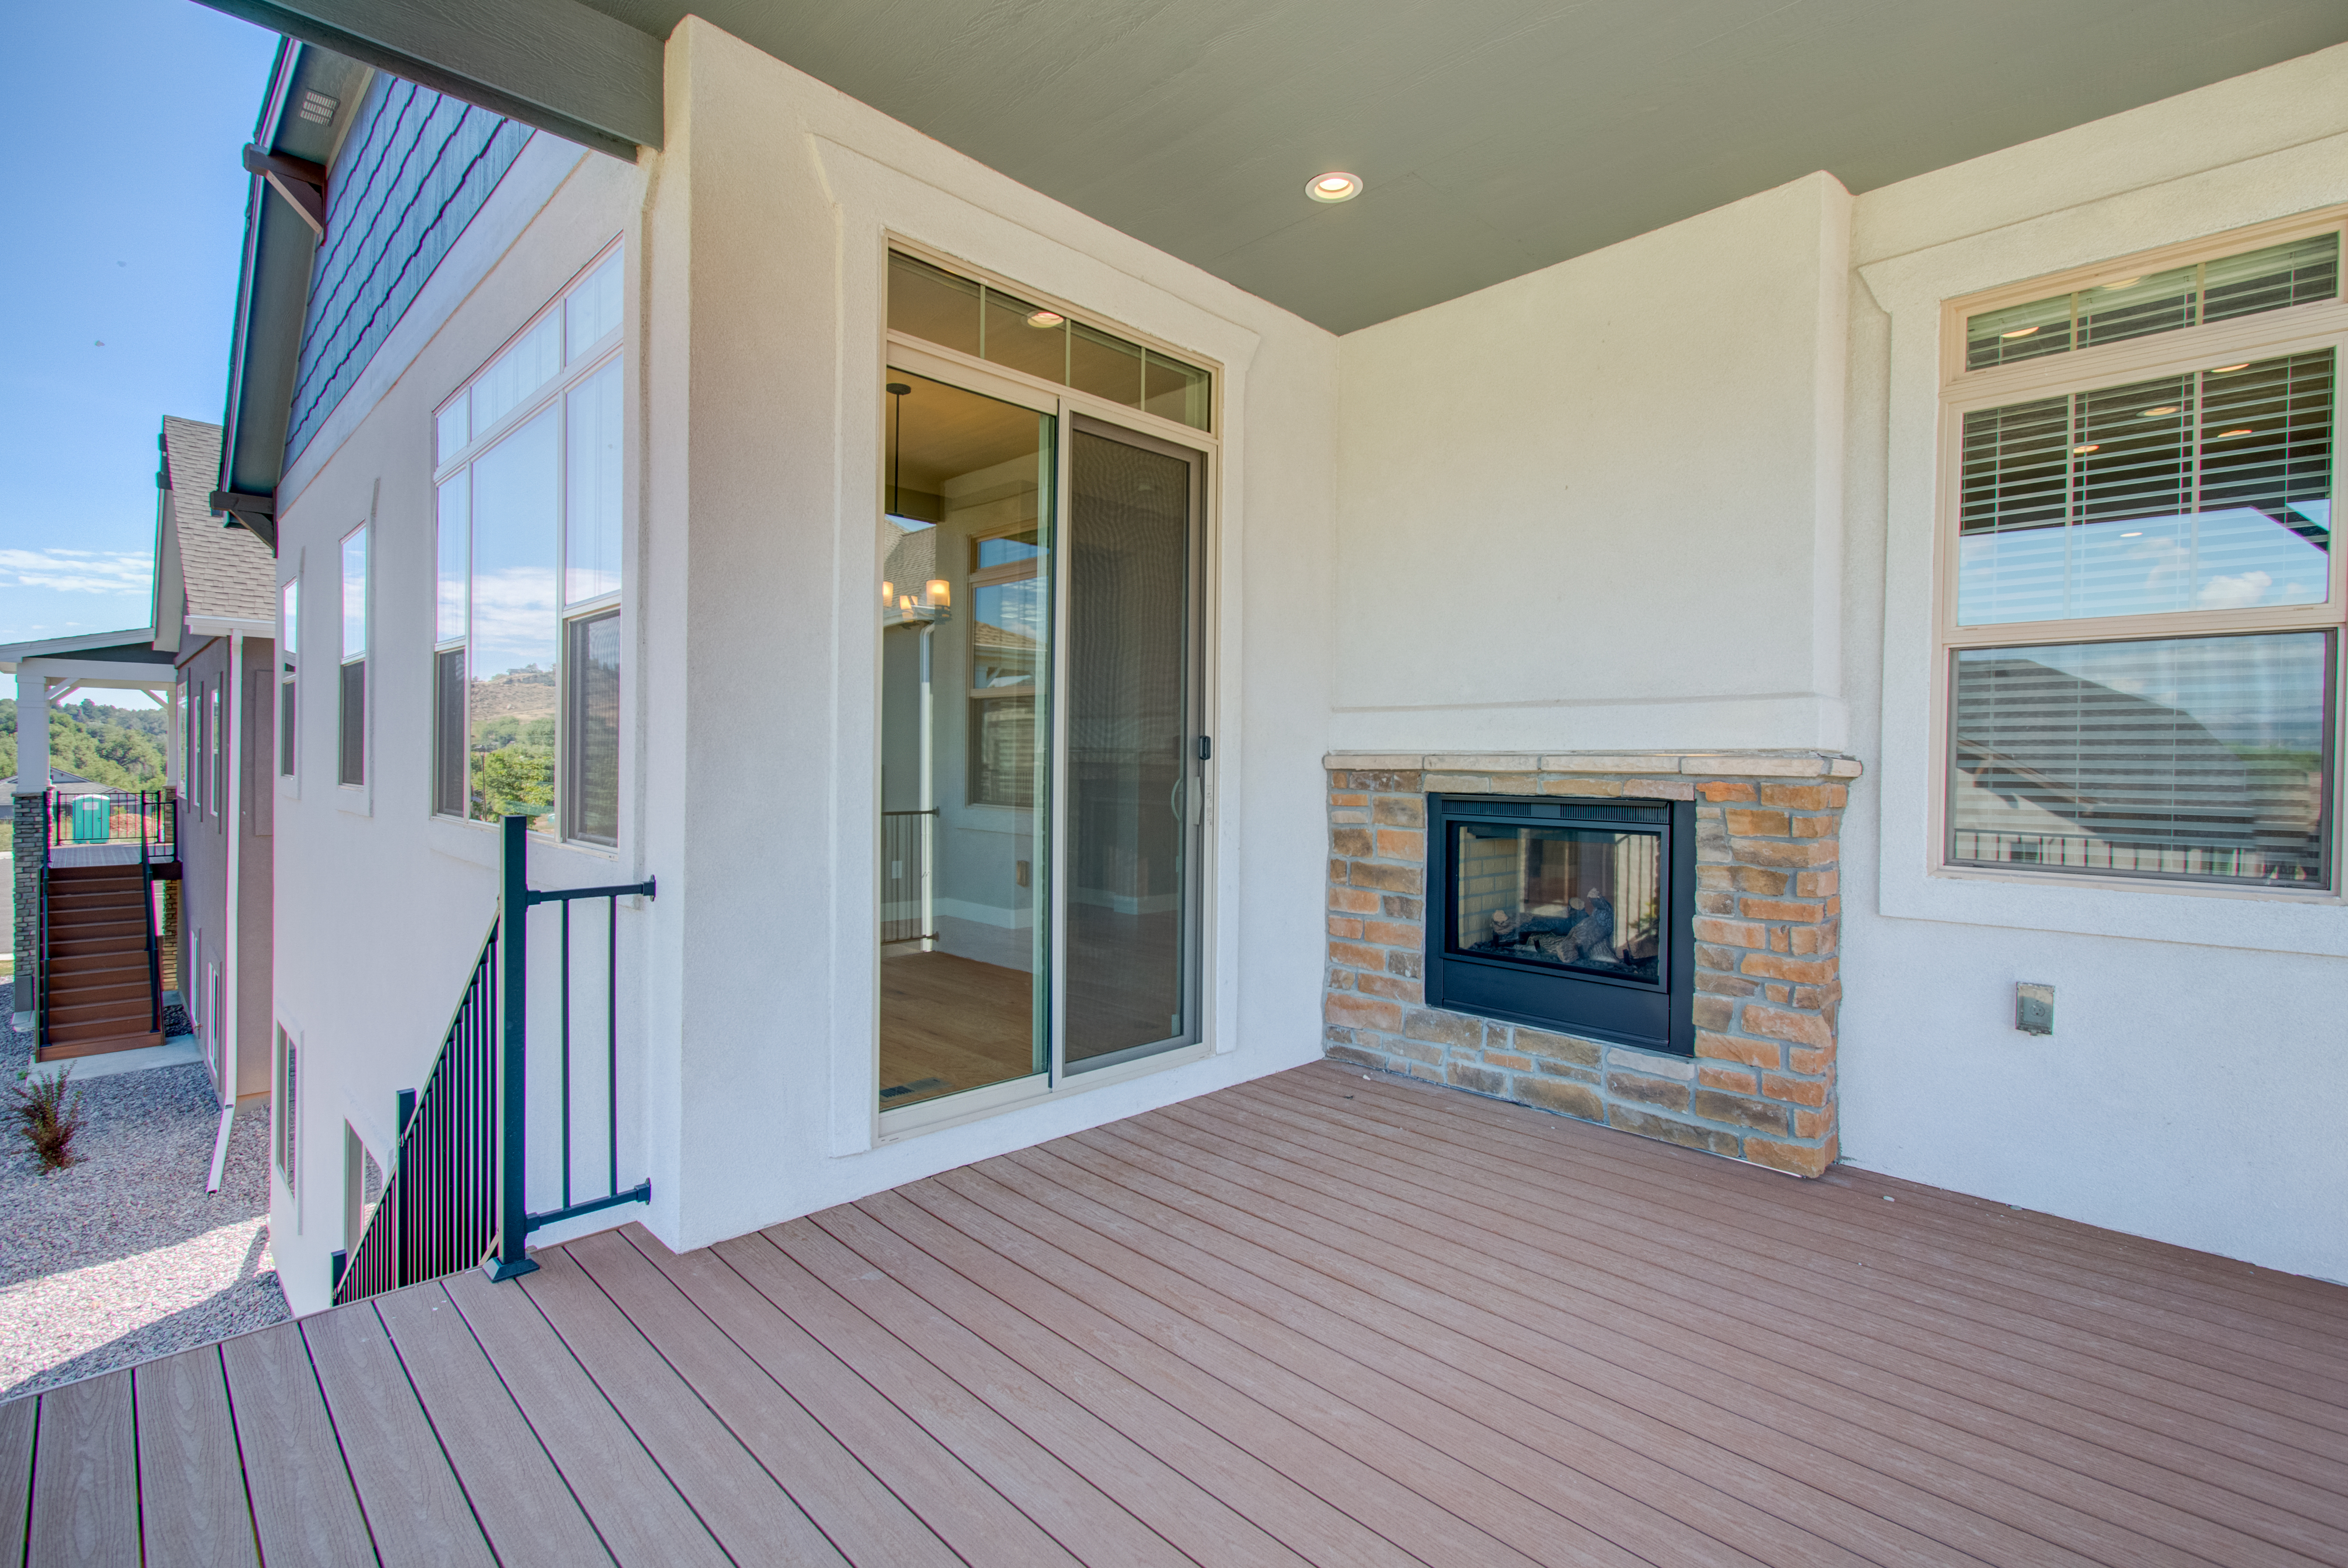 33_4793_20mariana_20hills_20cir_loveland_raised_20deck_20with_202-way_20fireplace_dream_20homes_20for_20sale